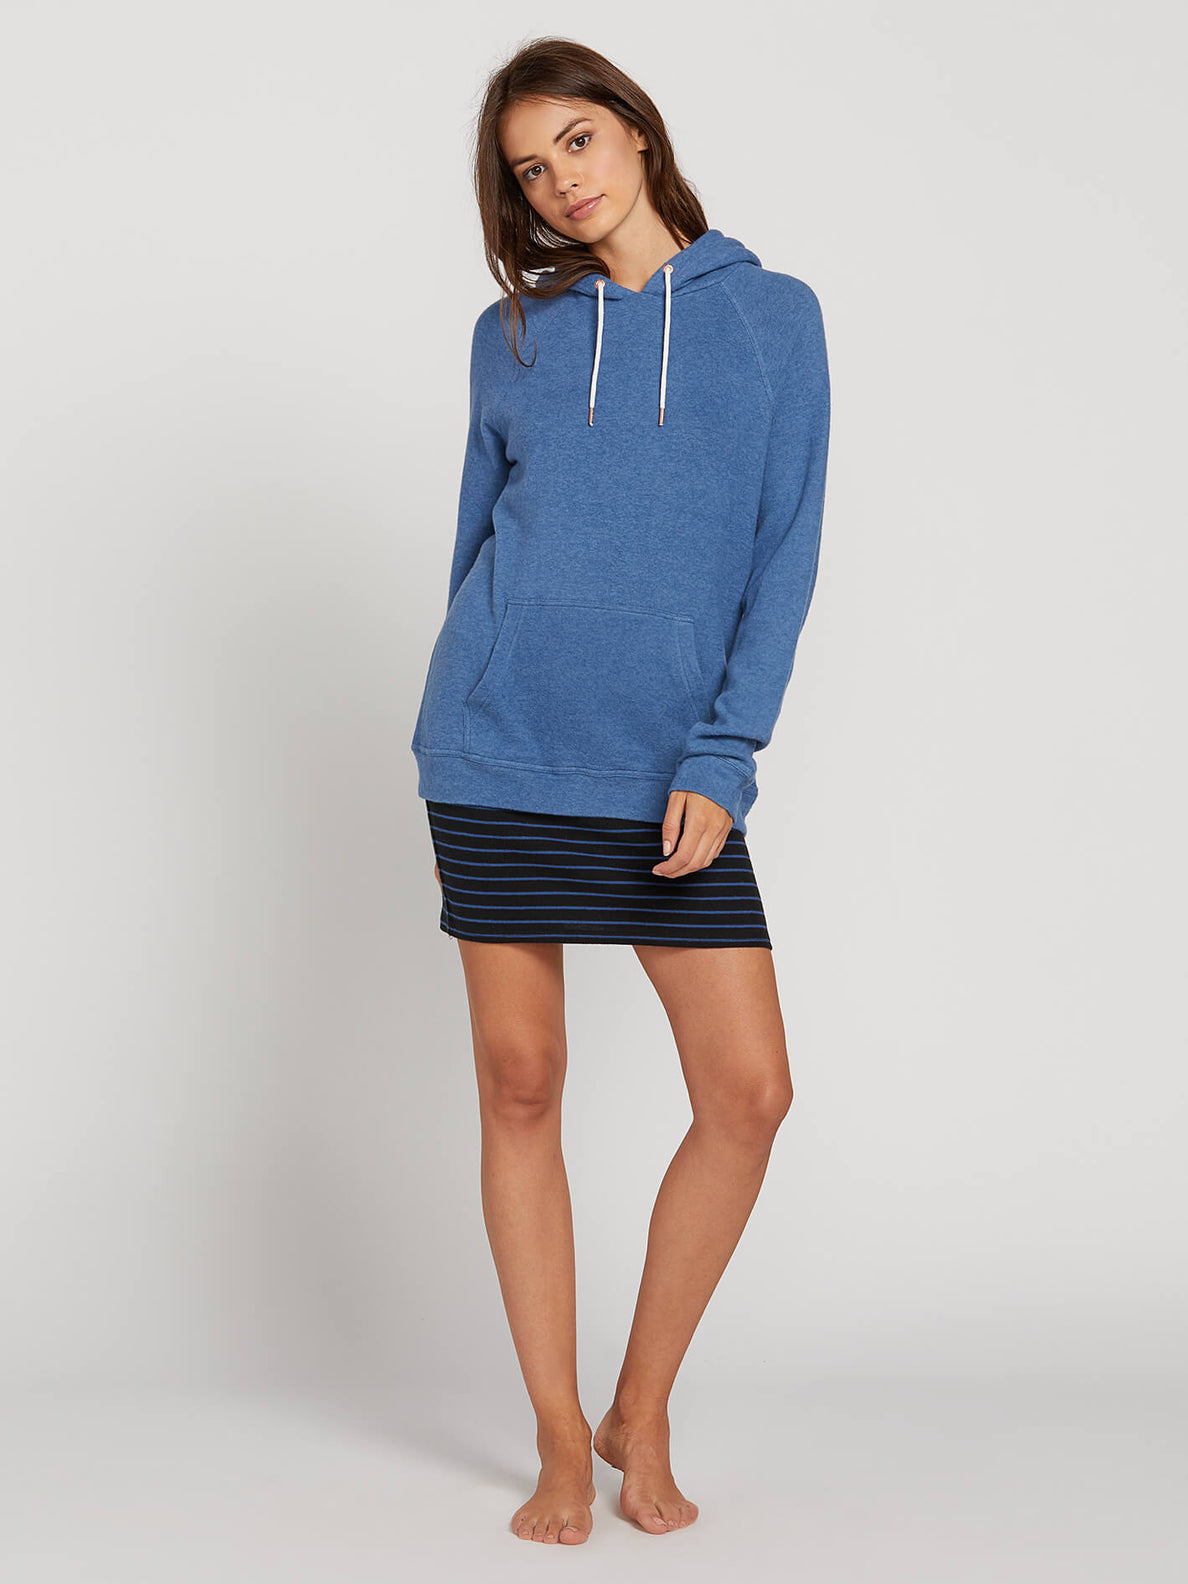 Lived In Lounge Hoodie In Blue Drift, Second Alternate View